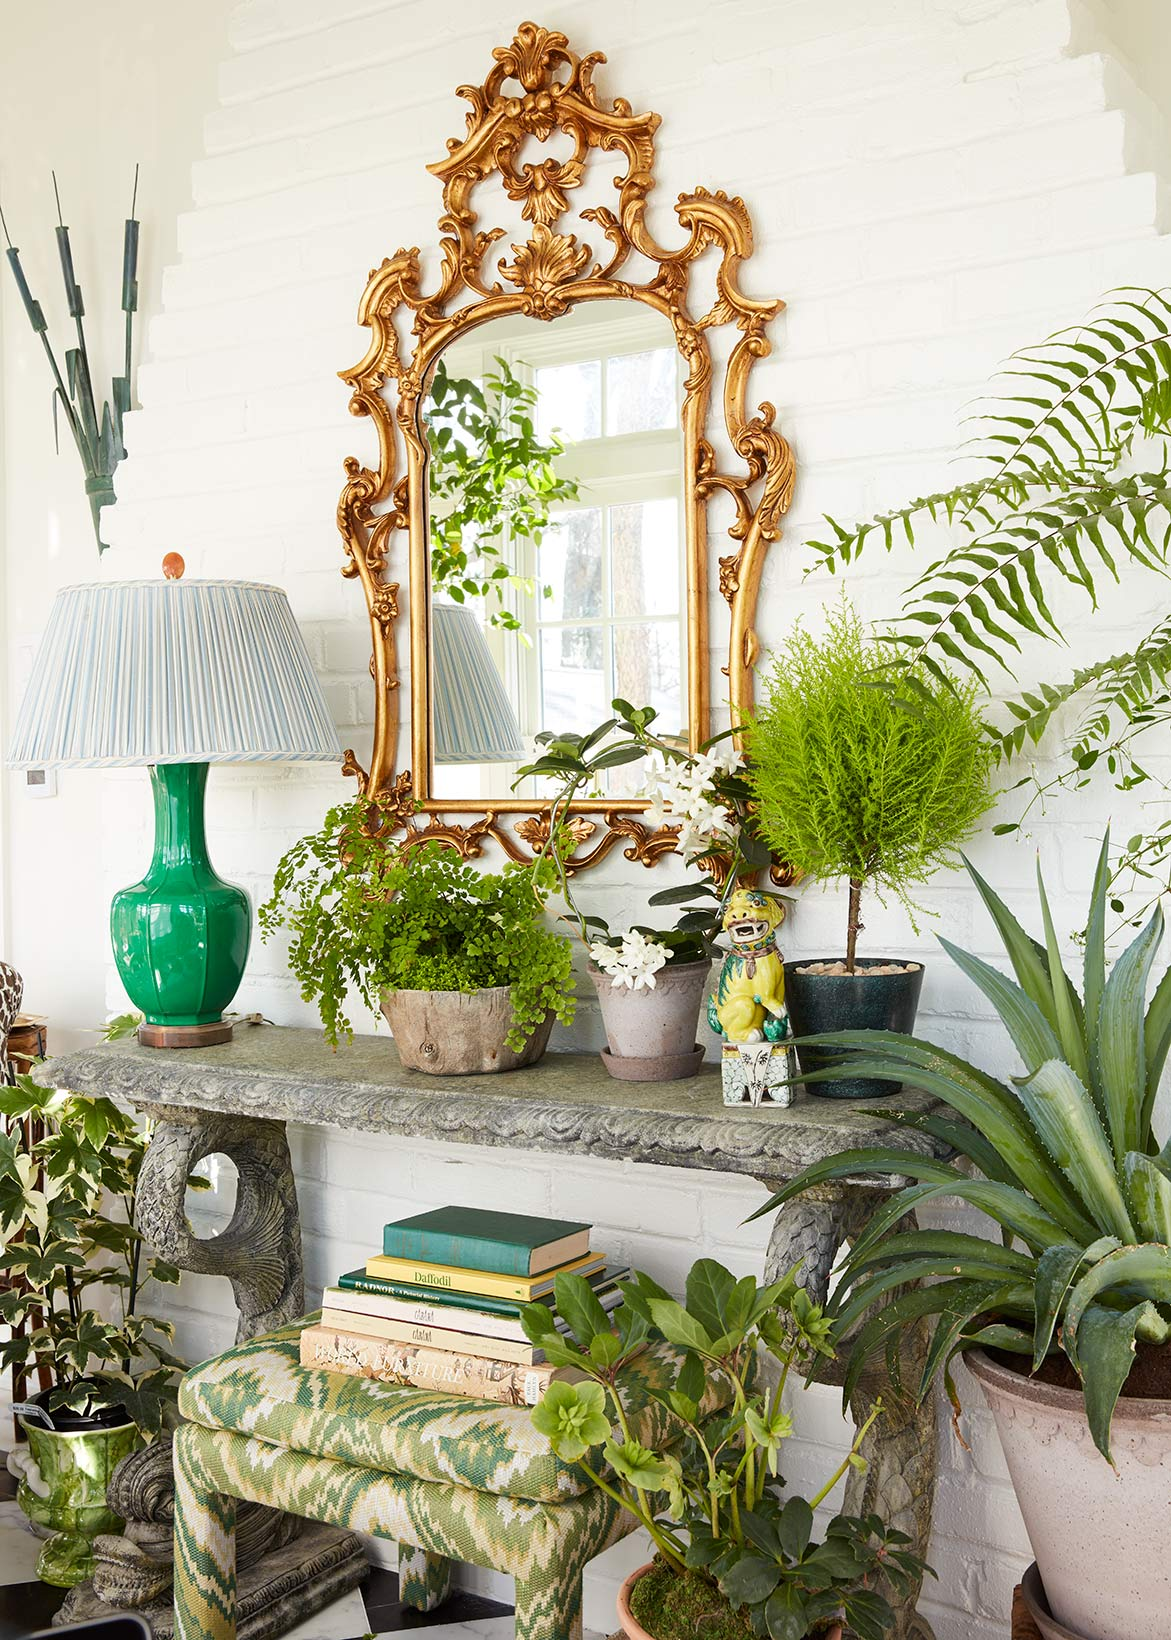 garden room style photograph for House Beautiful magazine